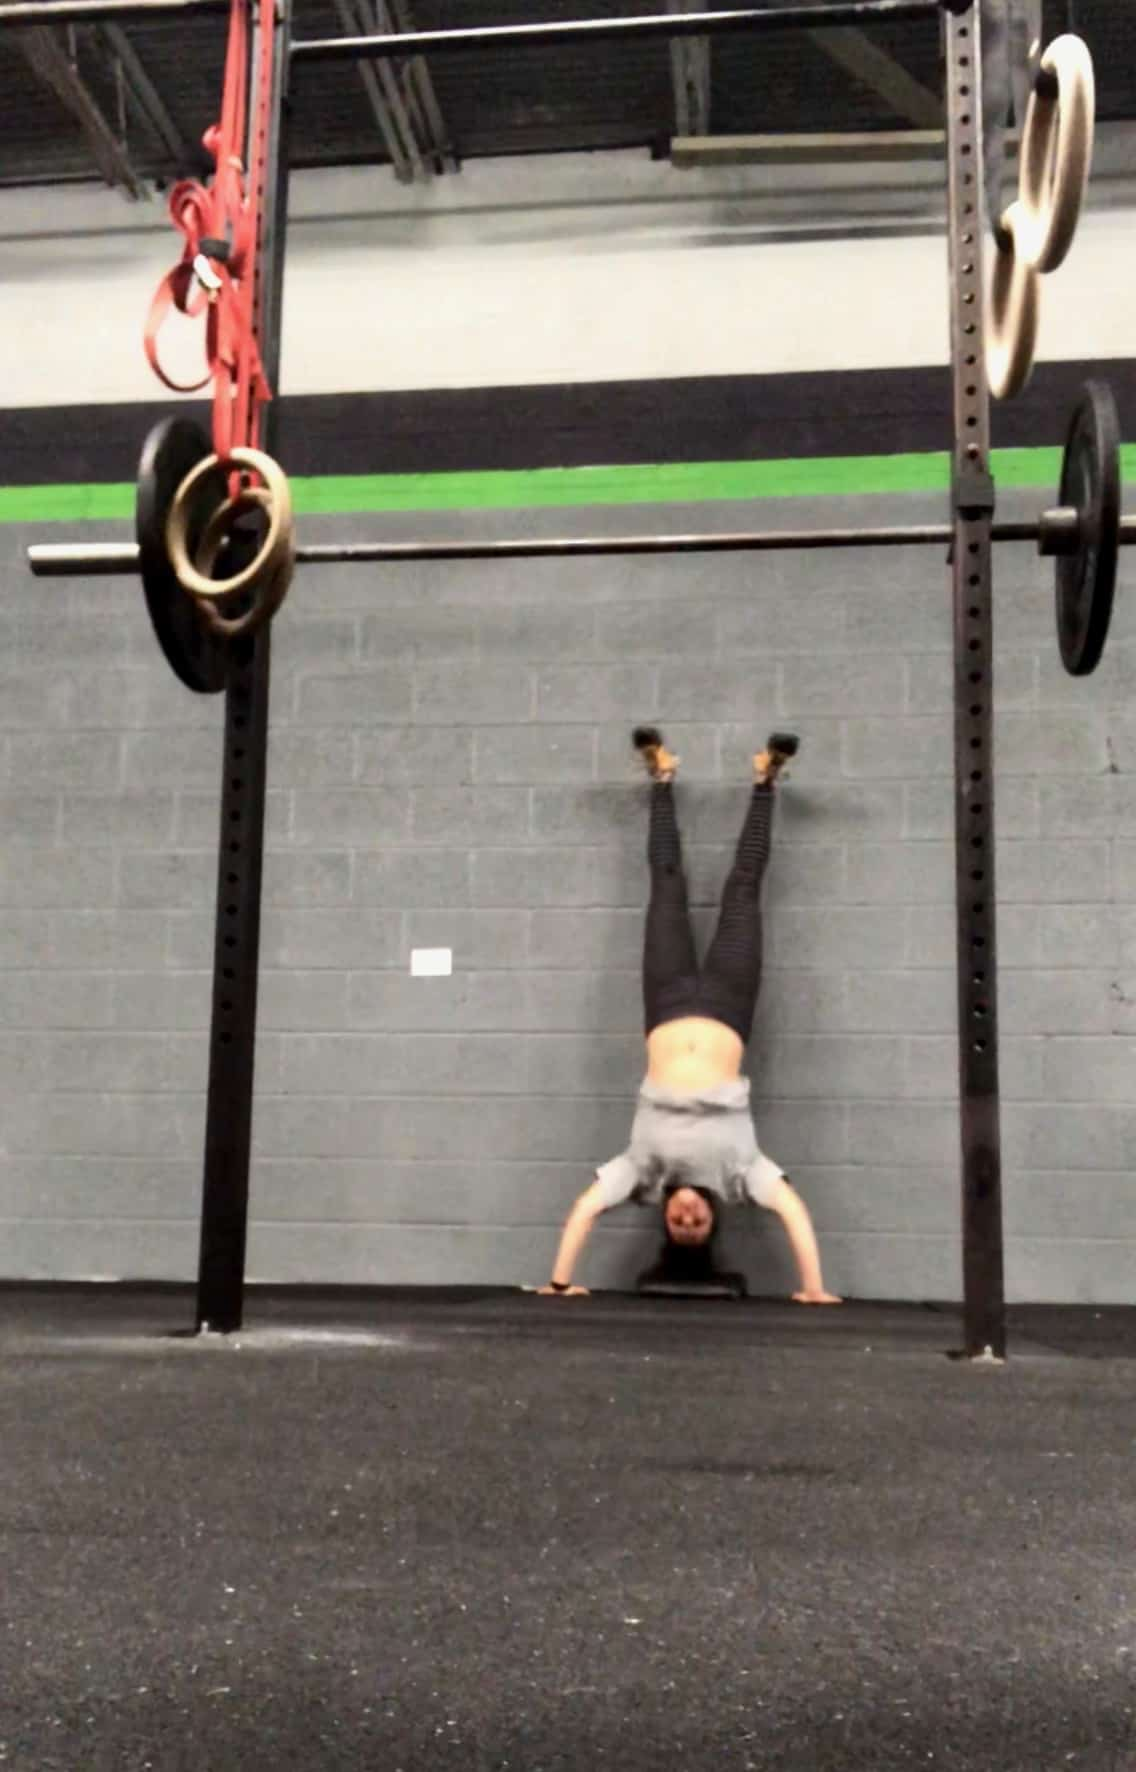 Girl upside-down doing a handstand push-up